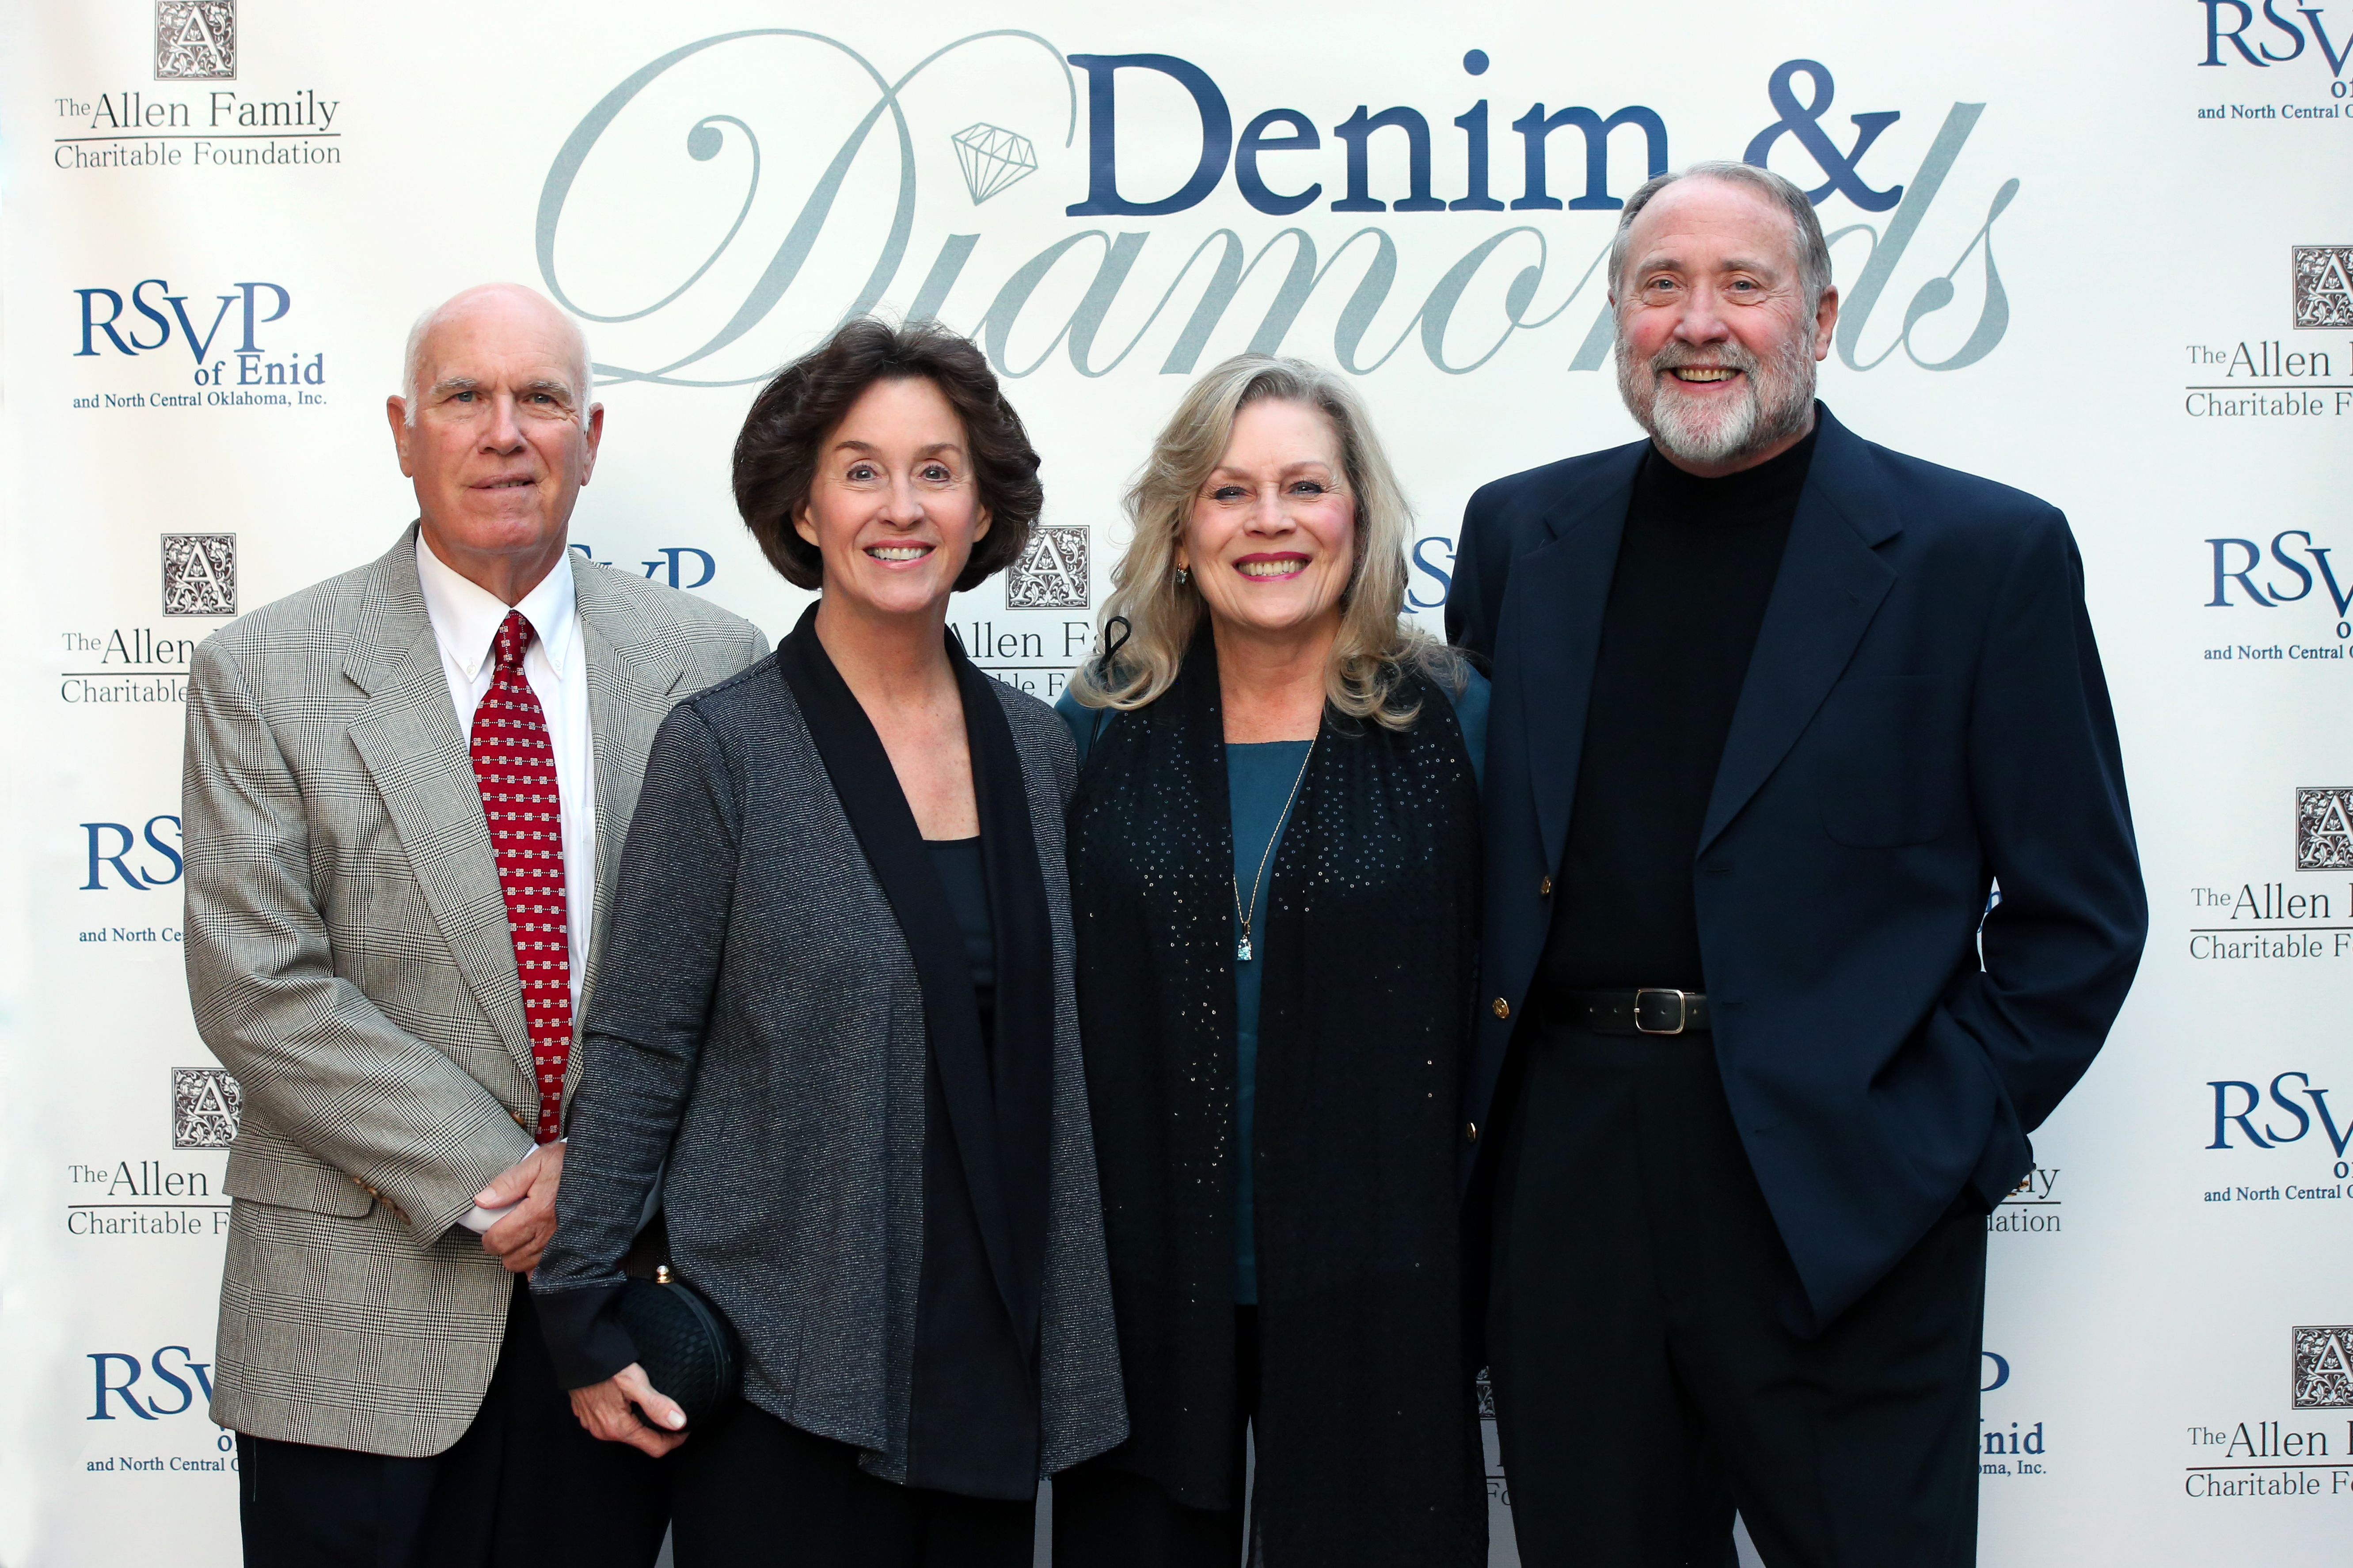 Denim & Diamonds Fundraiser